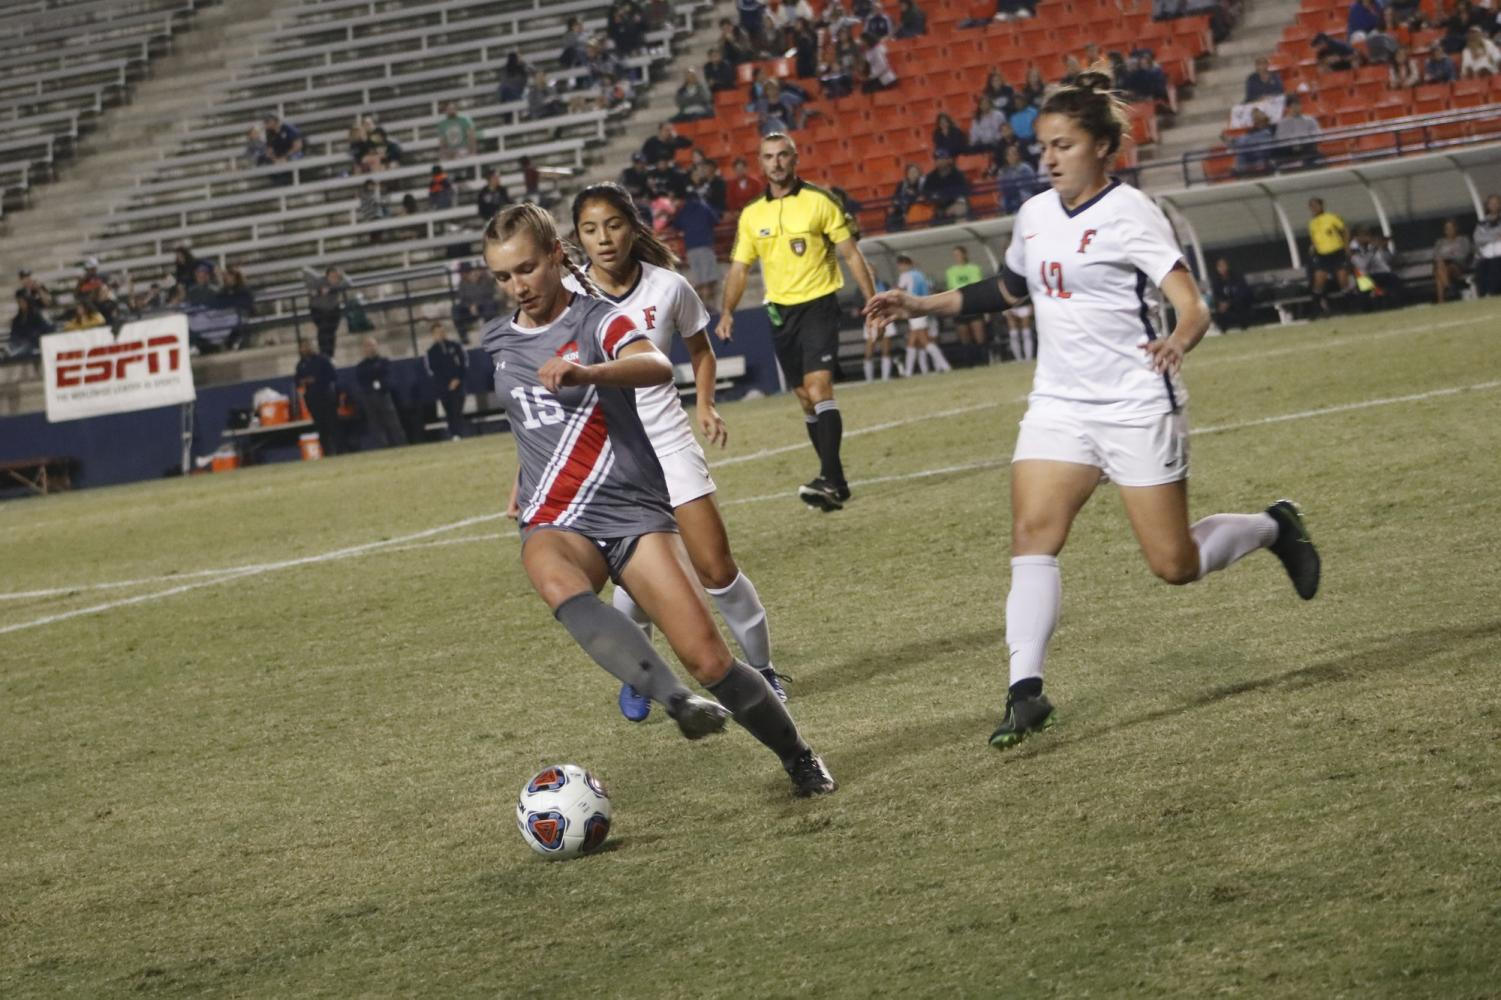 CSUN midfielder Kiley Voss (15) takes the ball to midfield during the Big West Championship game at Titan Stadium on Nov. 10. Photo credit: Karma Singh